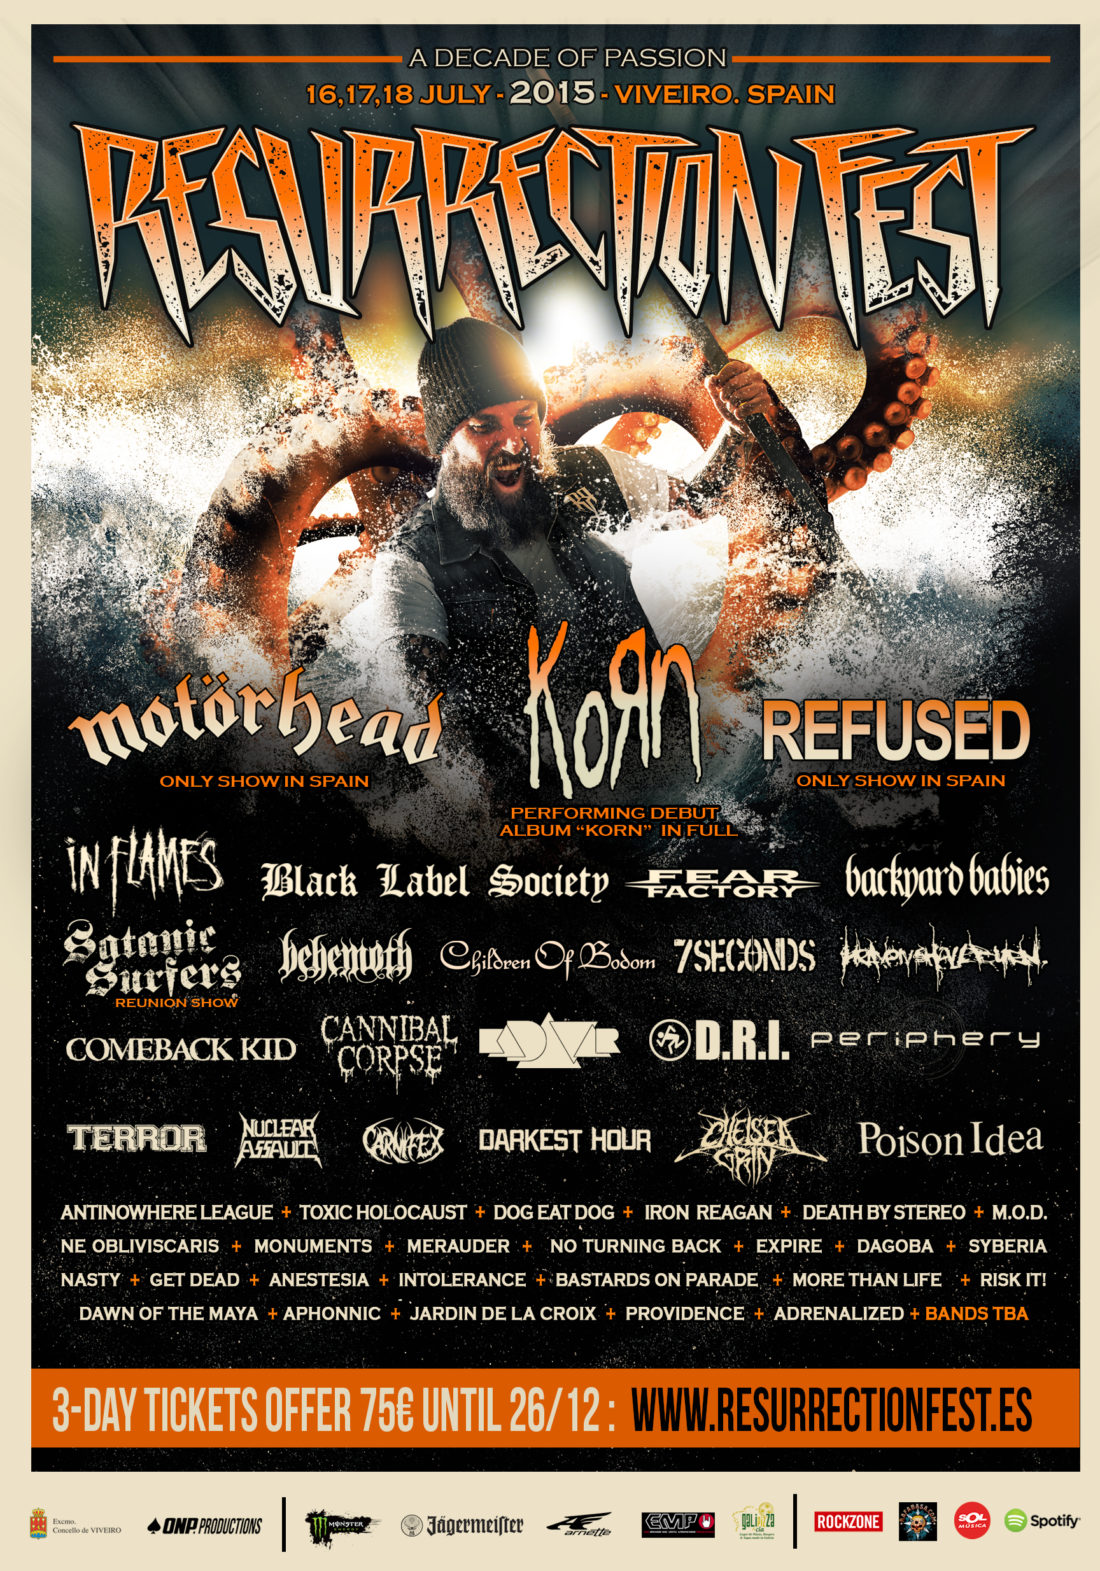 New bands for RESURRECTION FEST 2015: KoRn, Refused and many more